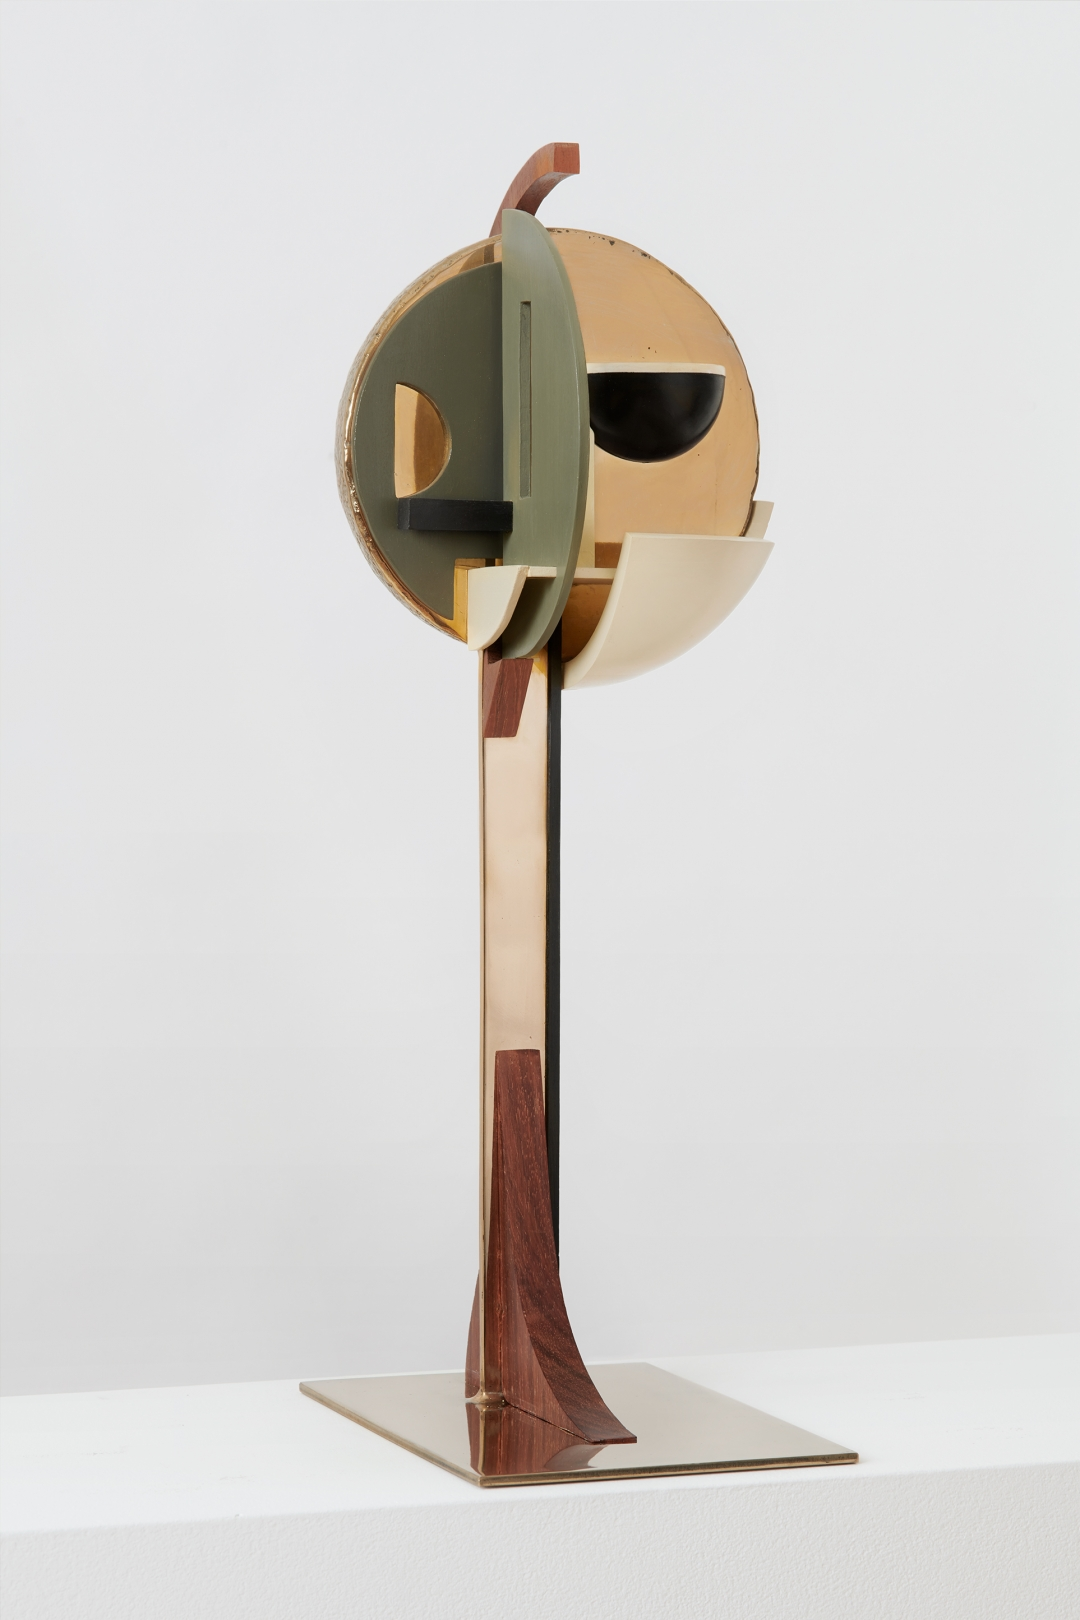 Christina Kruse, <i>Man 1</i>, 2016, bronze, wood, acrylic paint, and wax, 9.75 x 6.75 x 22.15 in.